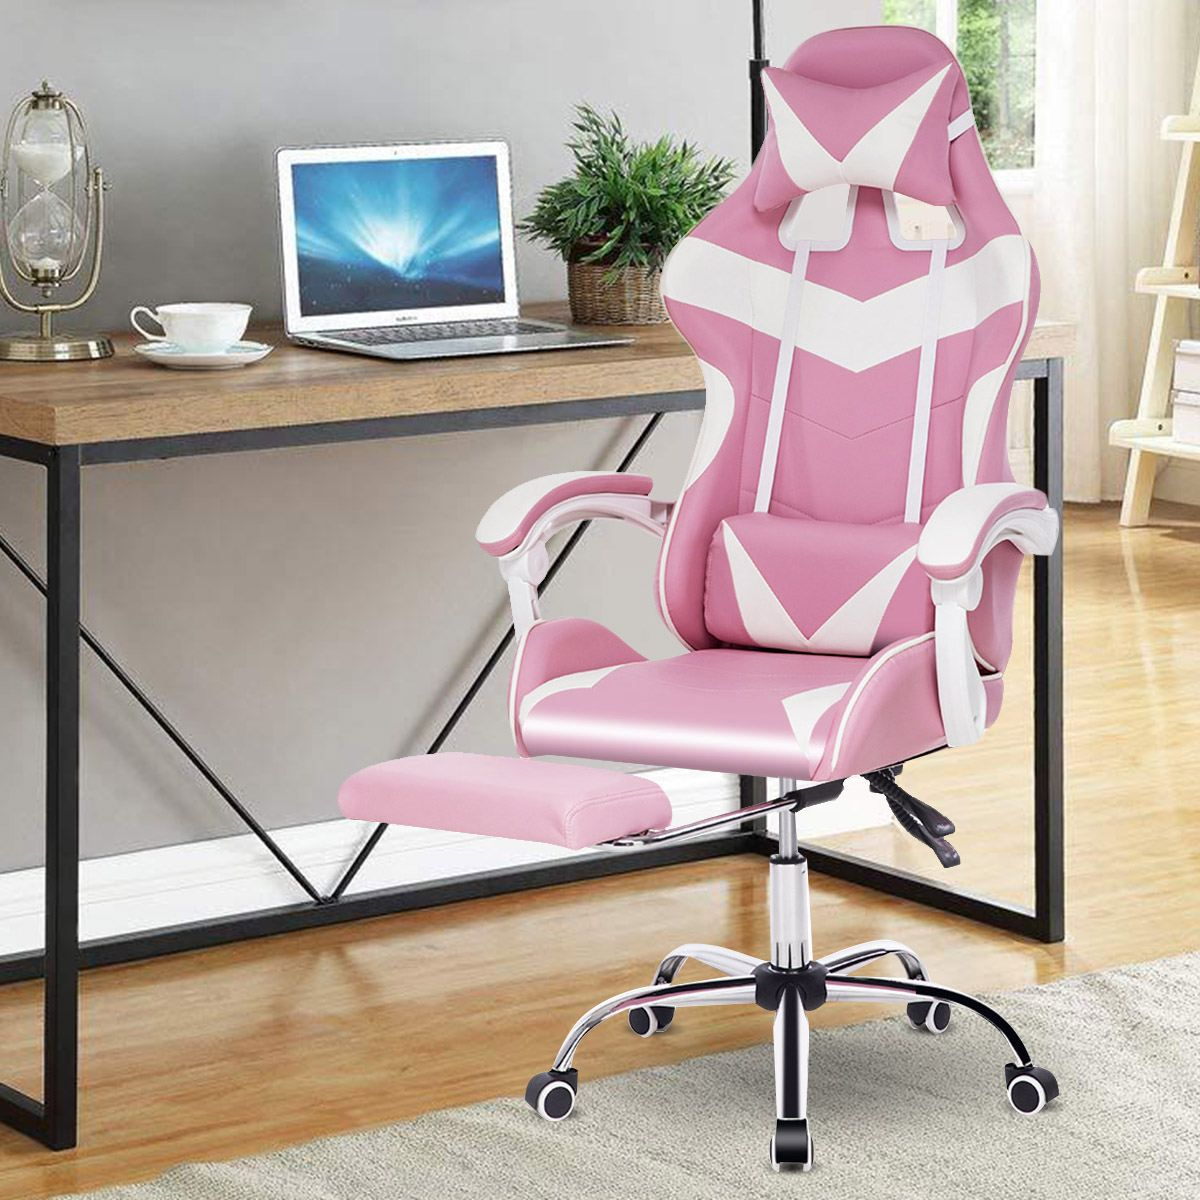 H695f5cd580204d839f44cc8805e3fa430 - Office Computer Chair WCG Gaming Chair Pink Silla Leather Desk Chair Internet Cafe Gamer Chair Household Armchair Office Chair